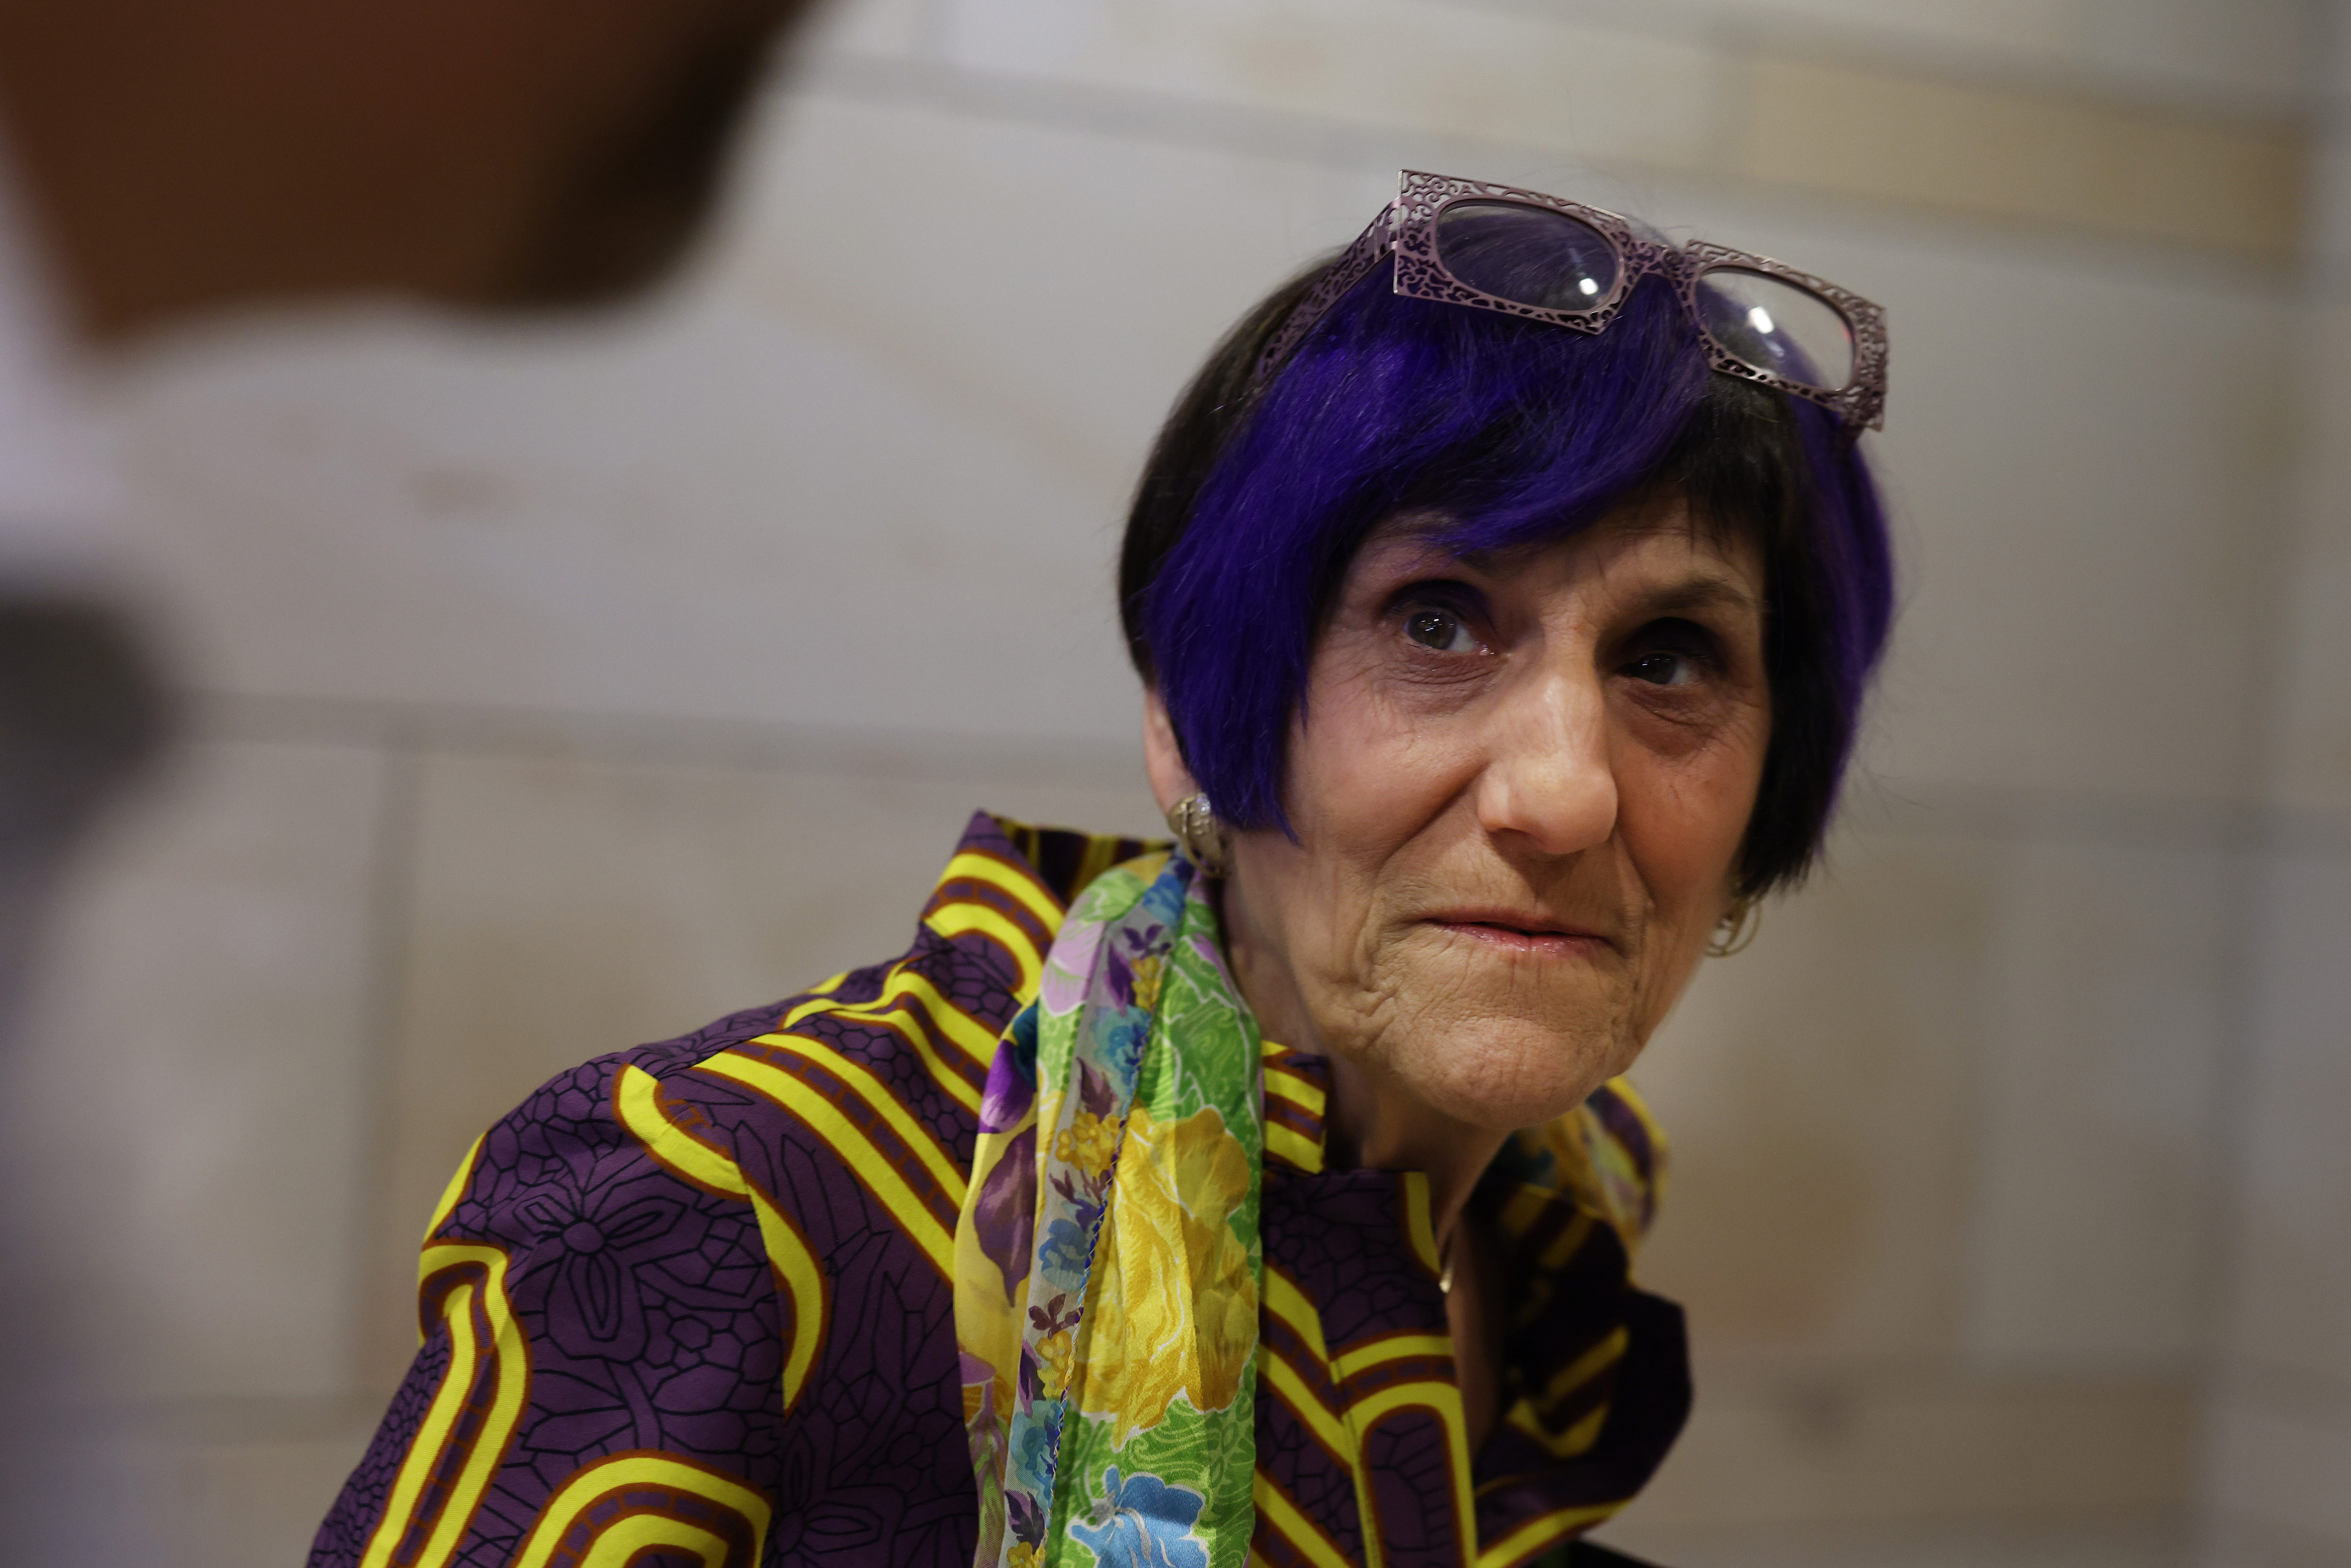 Rep. Rosa DeLauro, D-Conn., chairman of the House Appropriations Committee, speaks June 15, 2021, to reporters as she leaves House Democratic Caucus meeting in the Capitol Visitor Center in Washington, D.C.